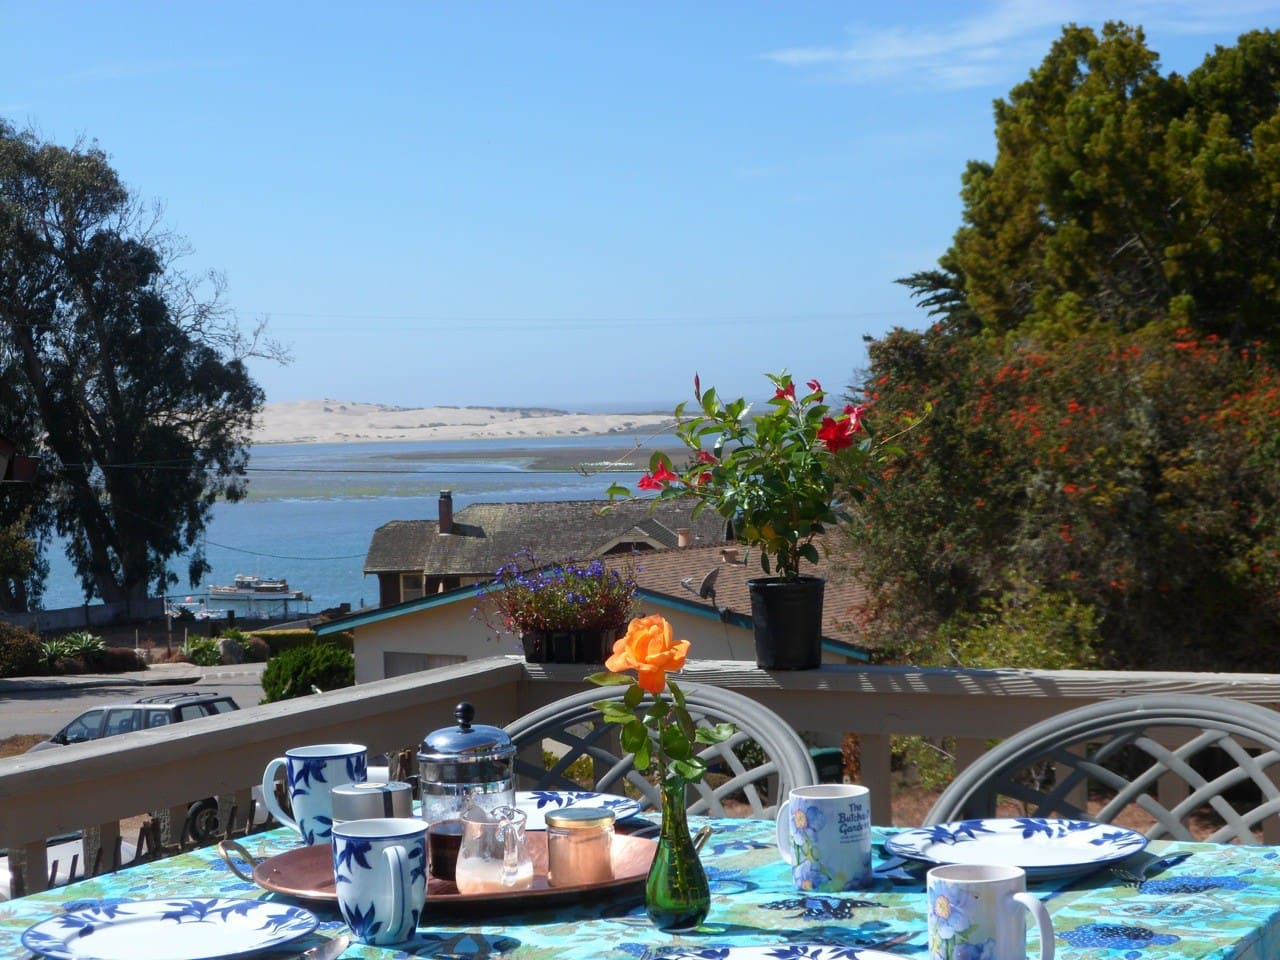 Enjoy breakfast on the deck with sweeping views of the bay, dunes, and ocean.